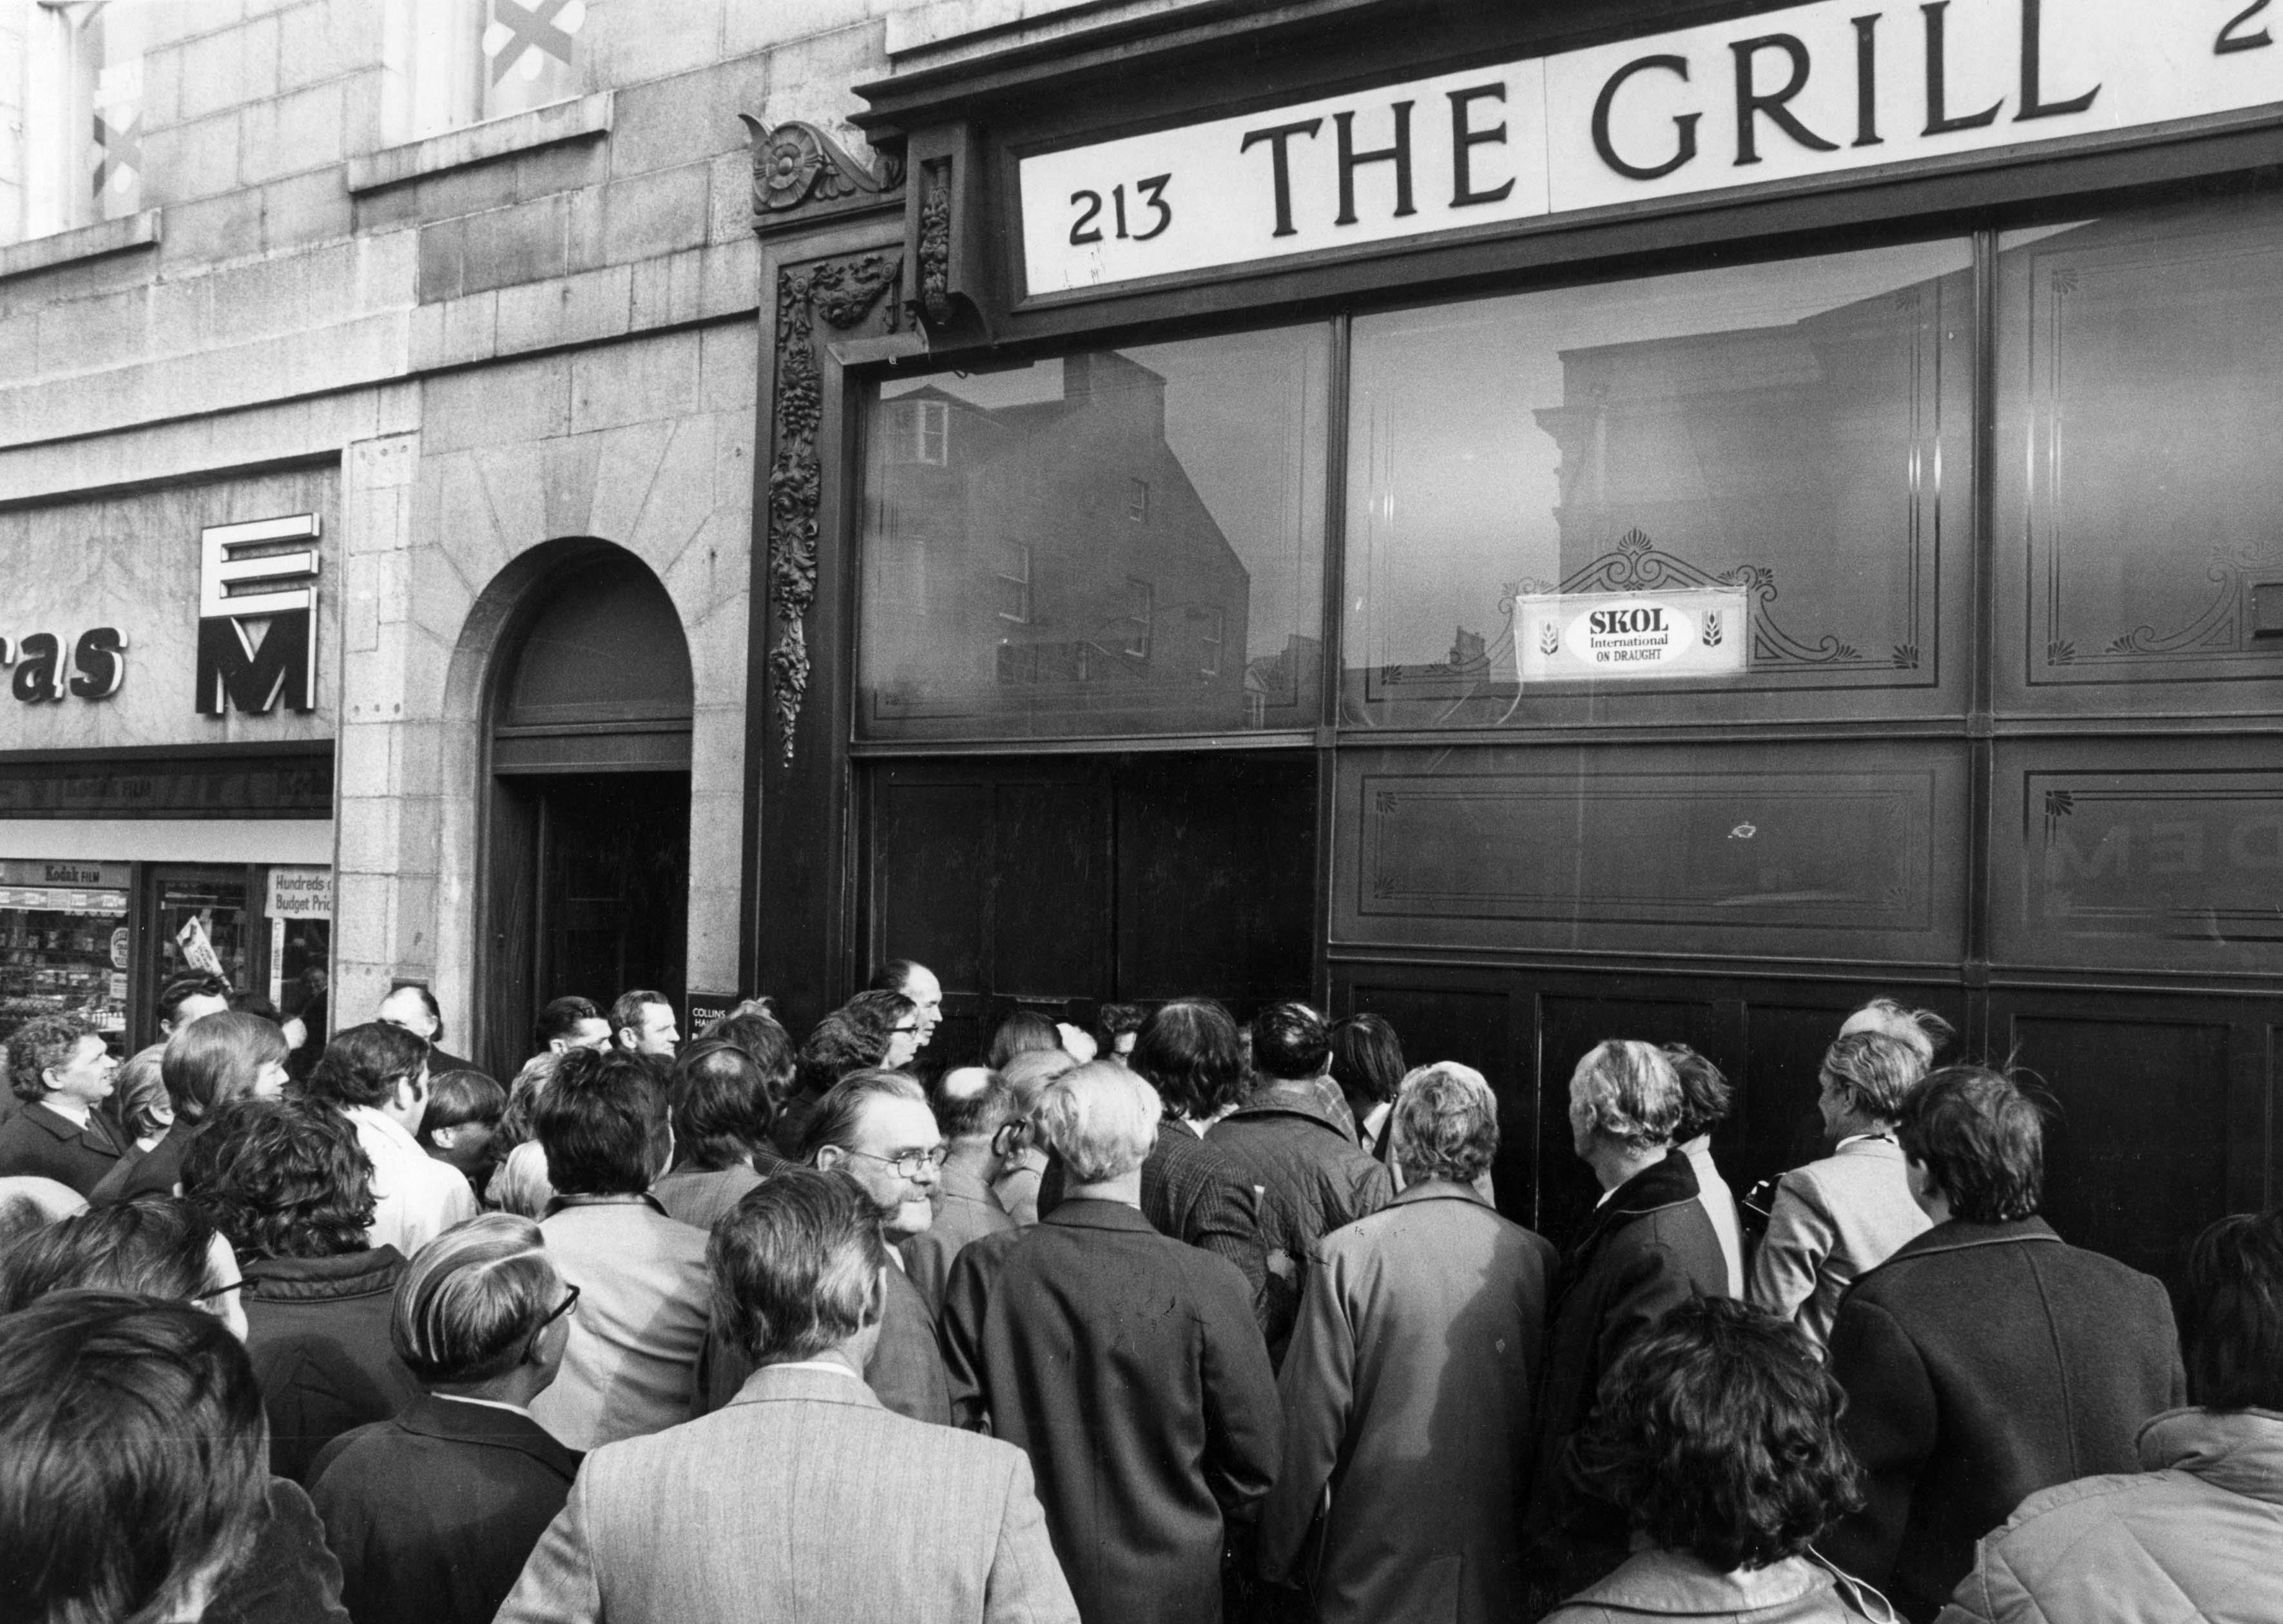 People queuing outside The Grill in 1973.